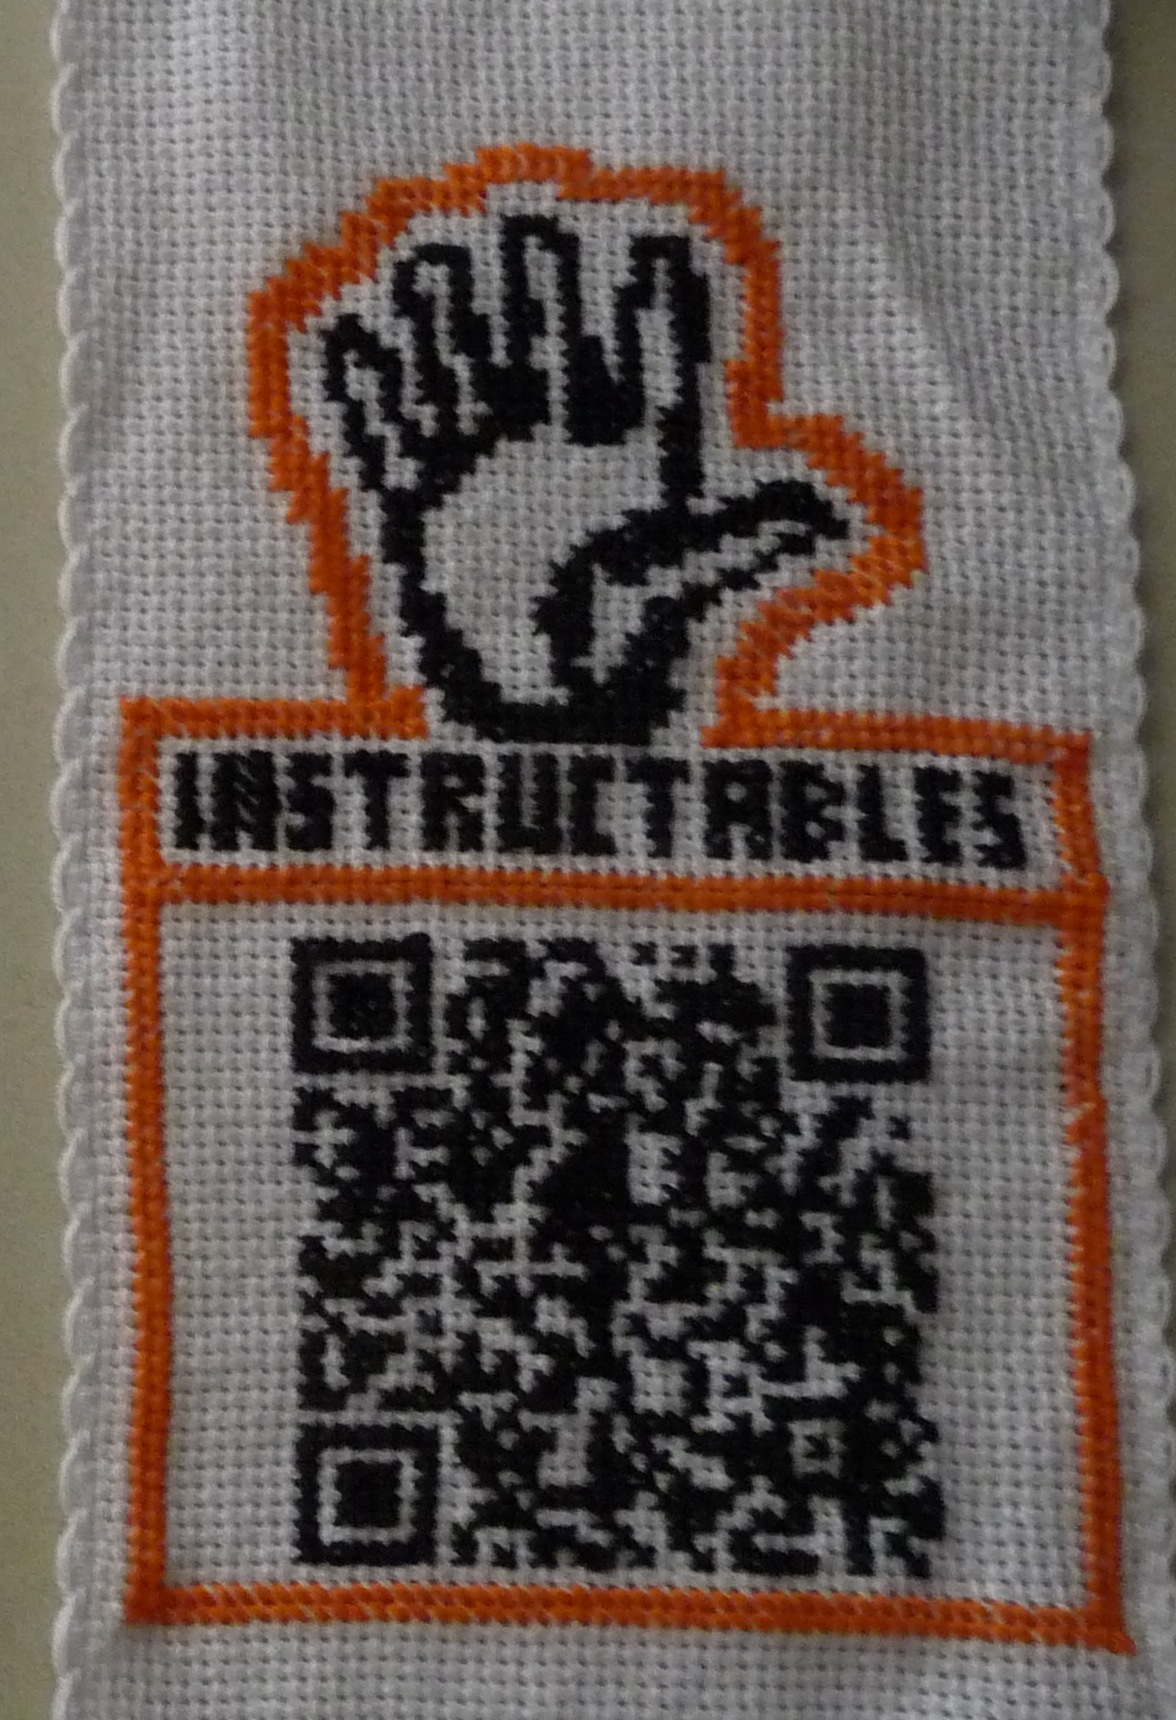 Make an instructables patch to apply to your projects